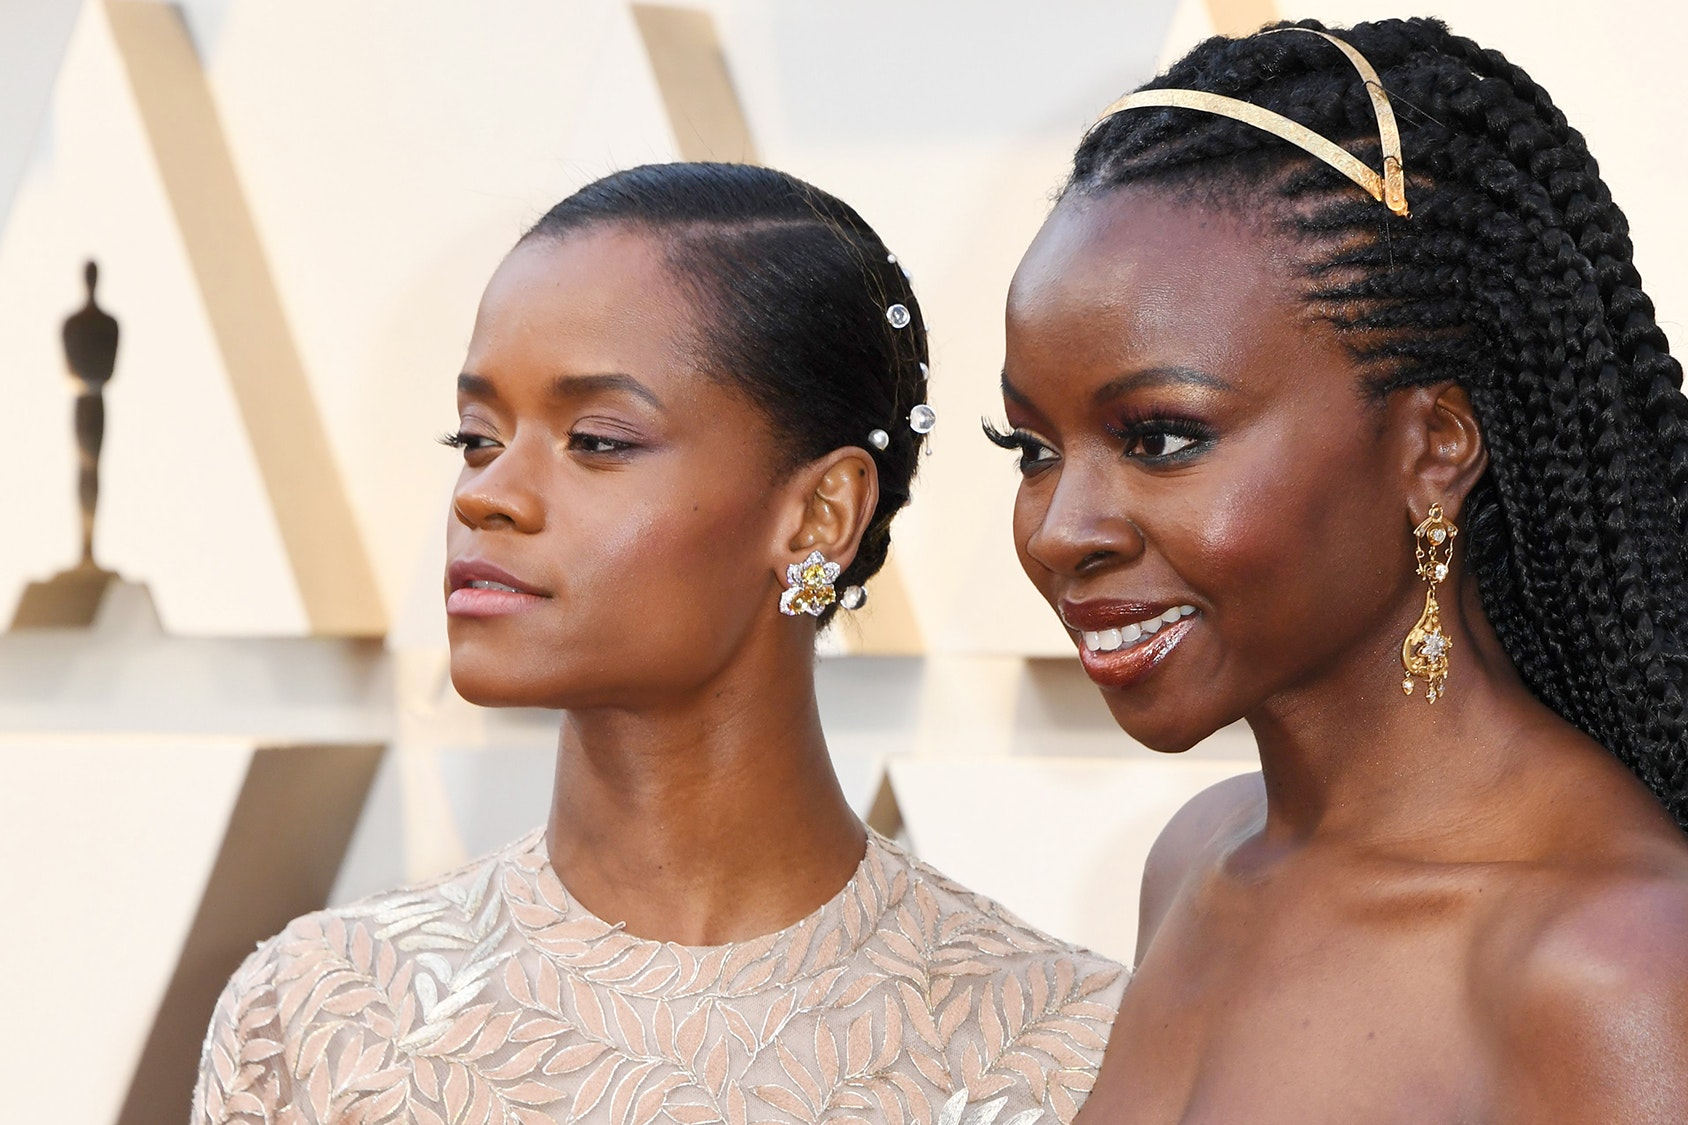 In Case You Missed It: 8 Chic Accessories From the 2019 Oscars